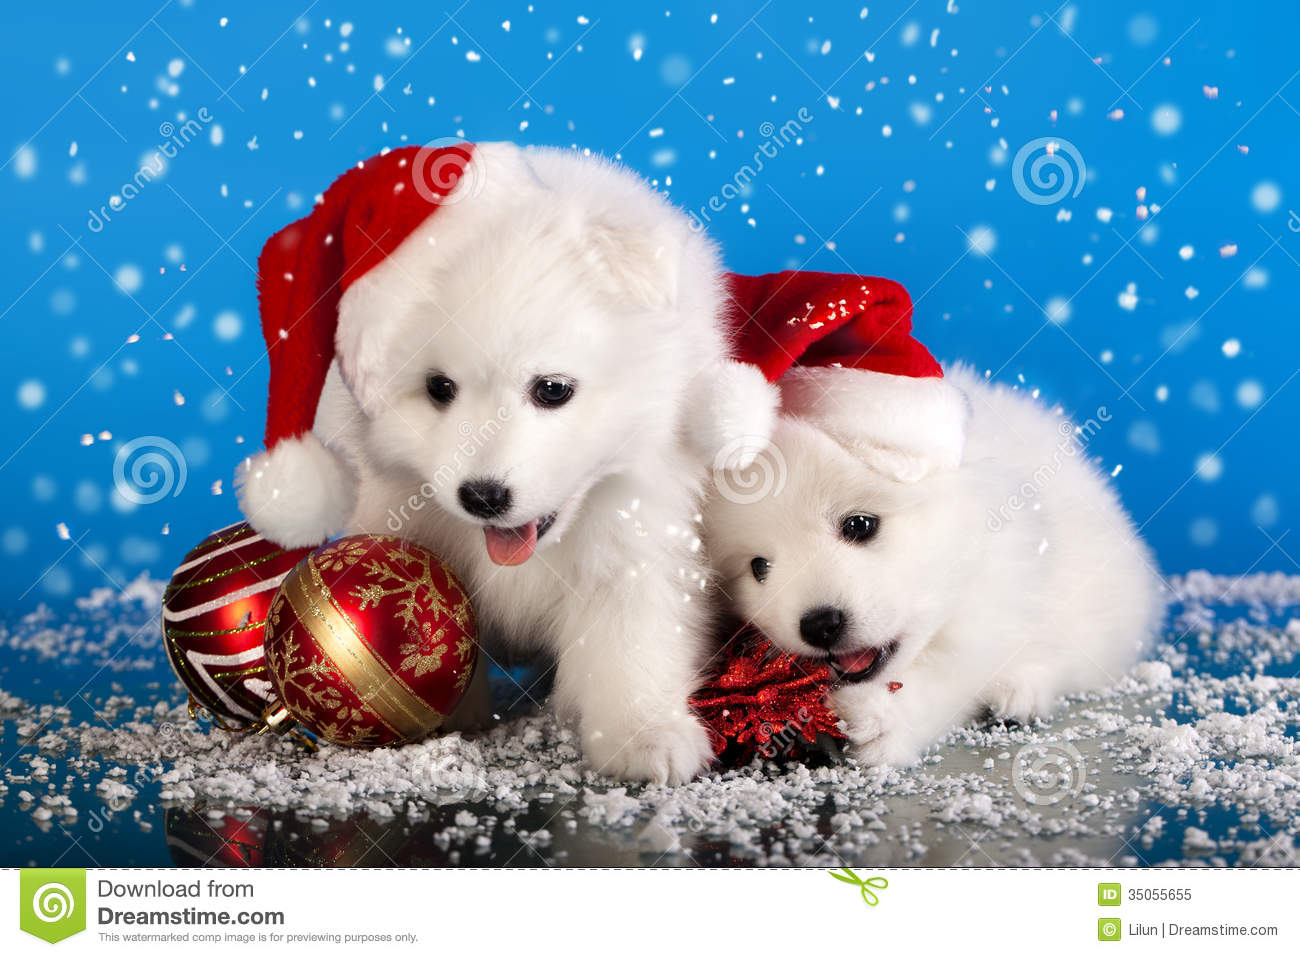 Cute Christmas Puppies.Christmas Puppies Spitz Stock Image Image Of Christmas